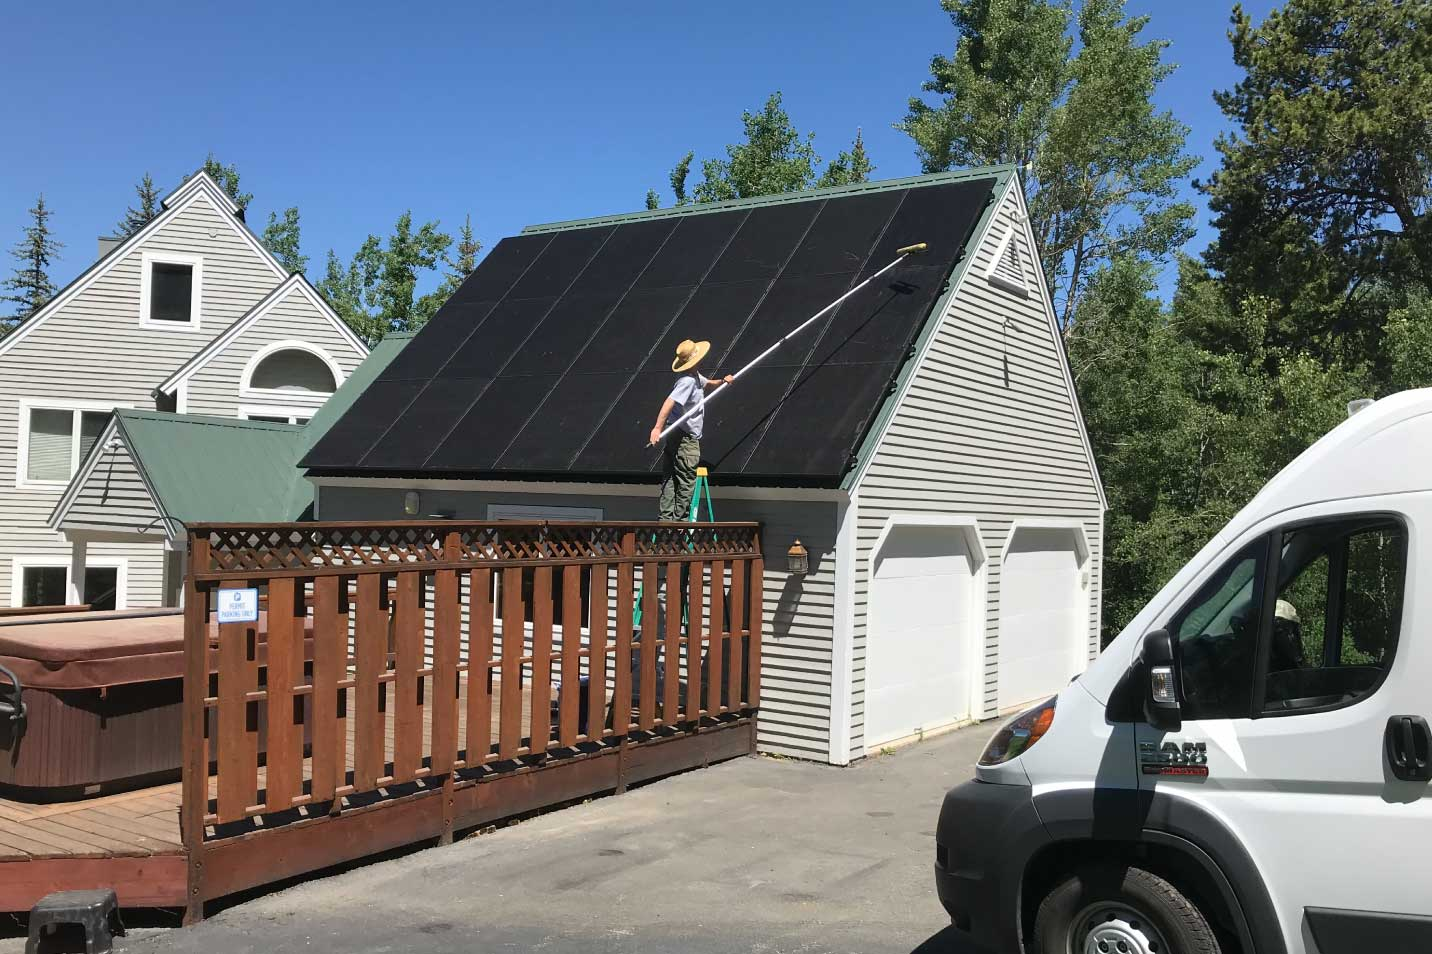 Brightside-solar-PROPOSAL-Inspection-activation-06